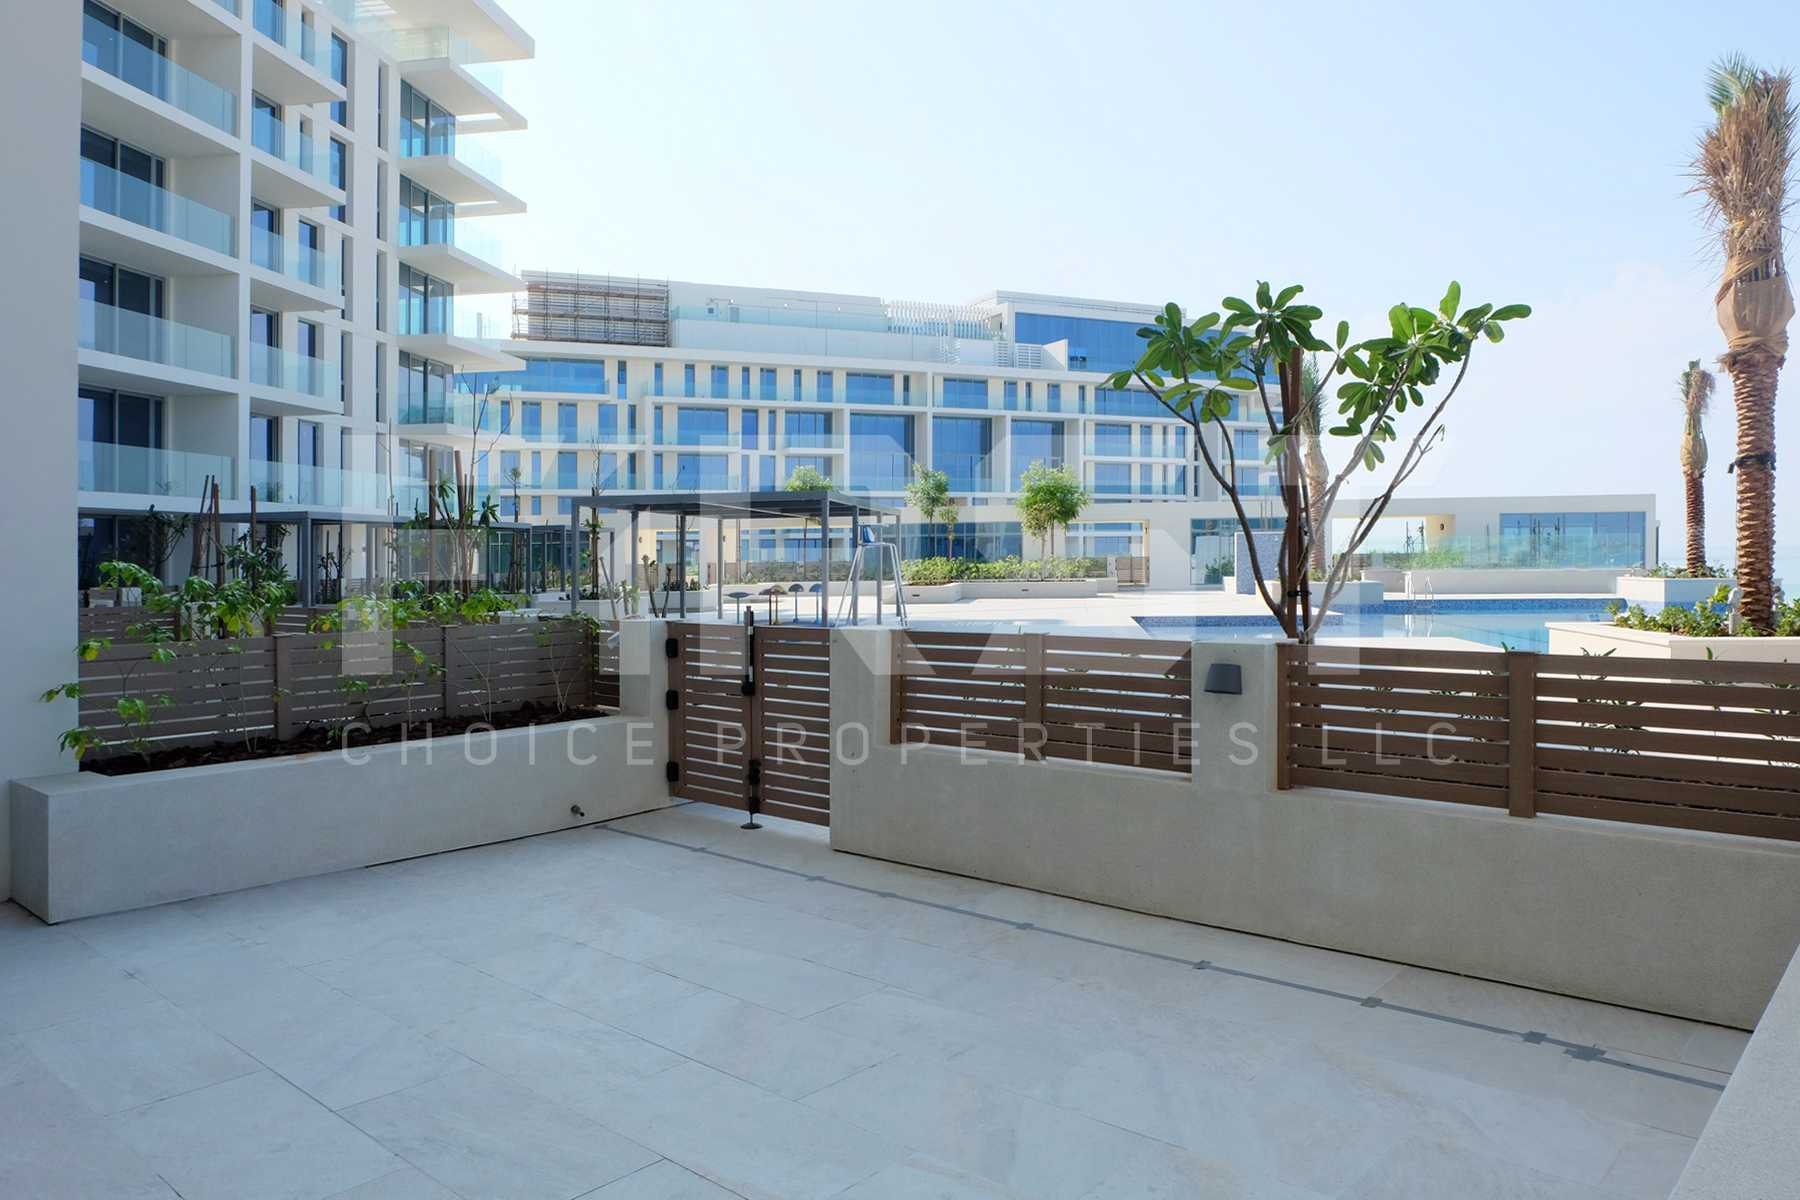 Internal Photo of 1 Bedroom Loft Apartment in Mamsha Al Saadiyat Island Abu Dhabi UAE (26).jpg